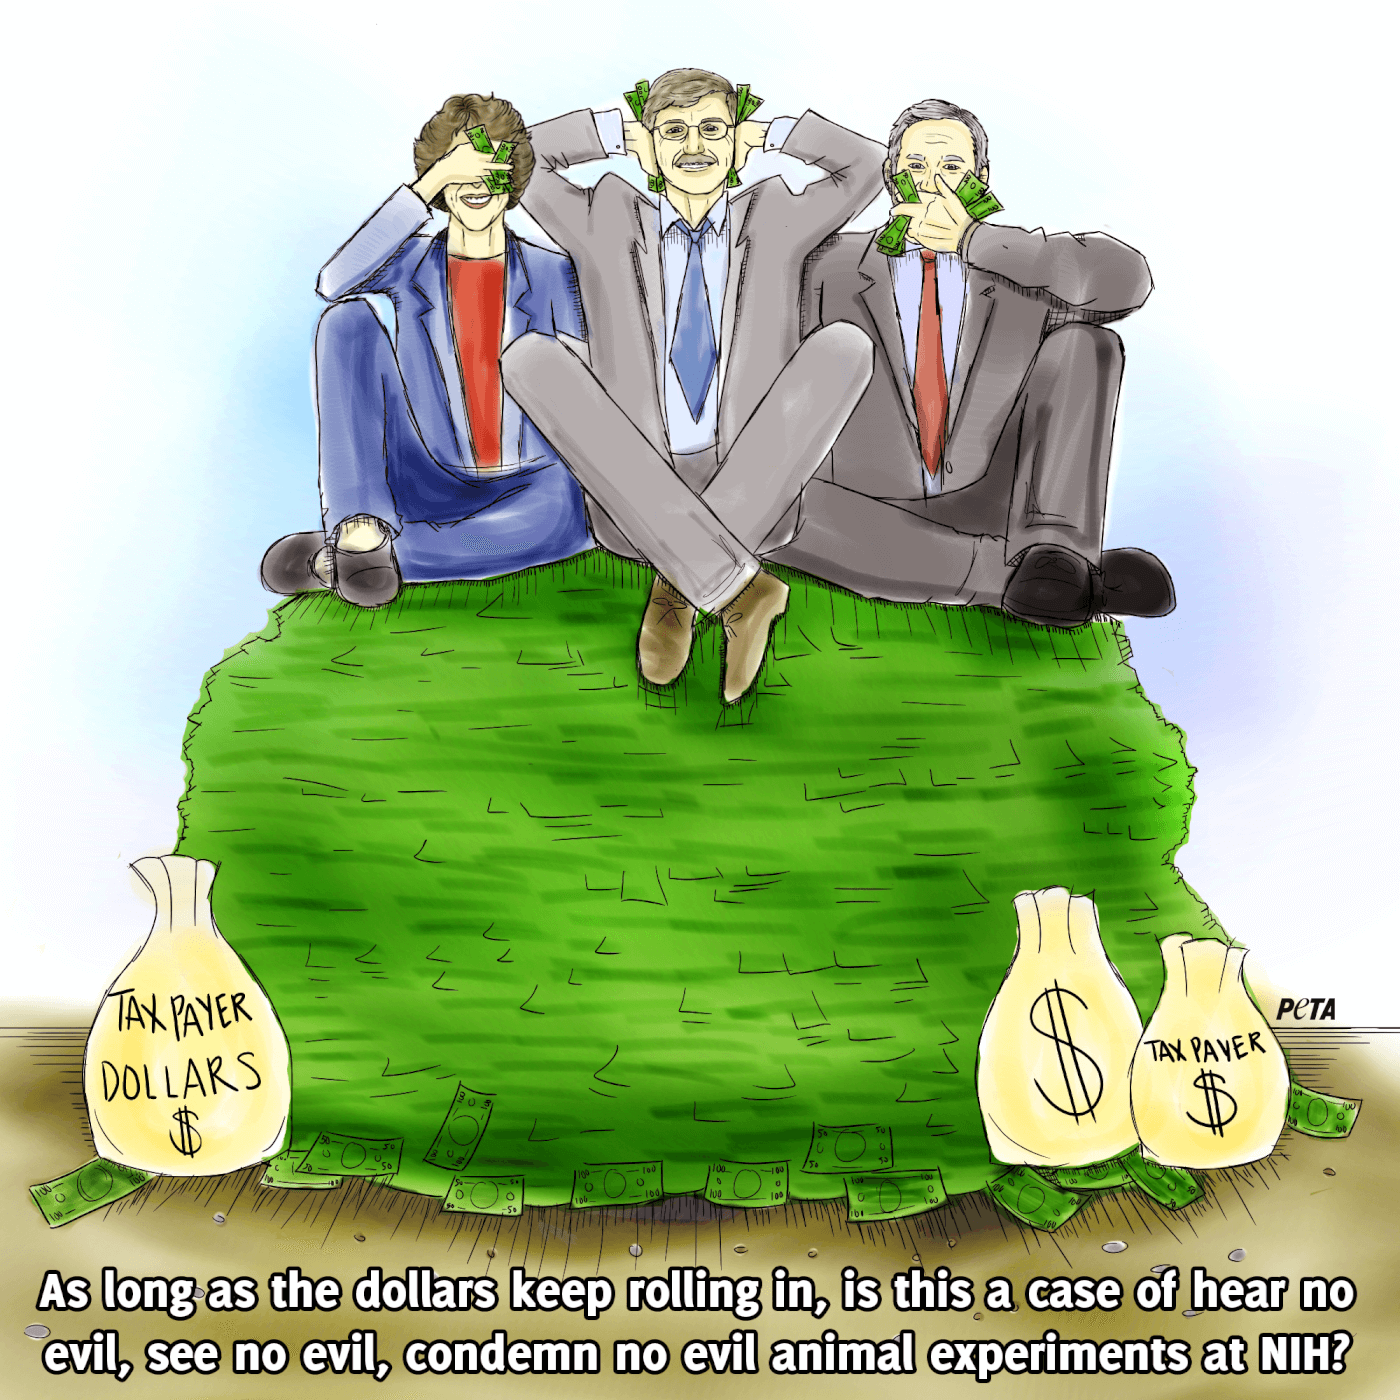 NIH directors sitting on top of taxpayer money